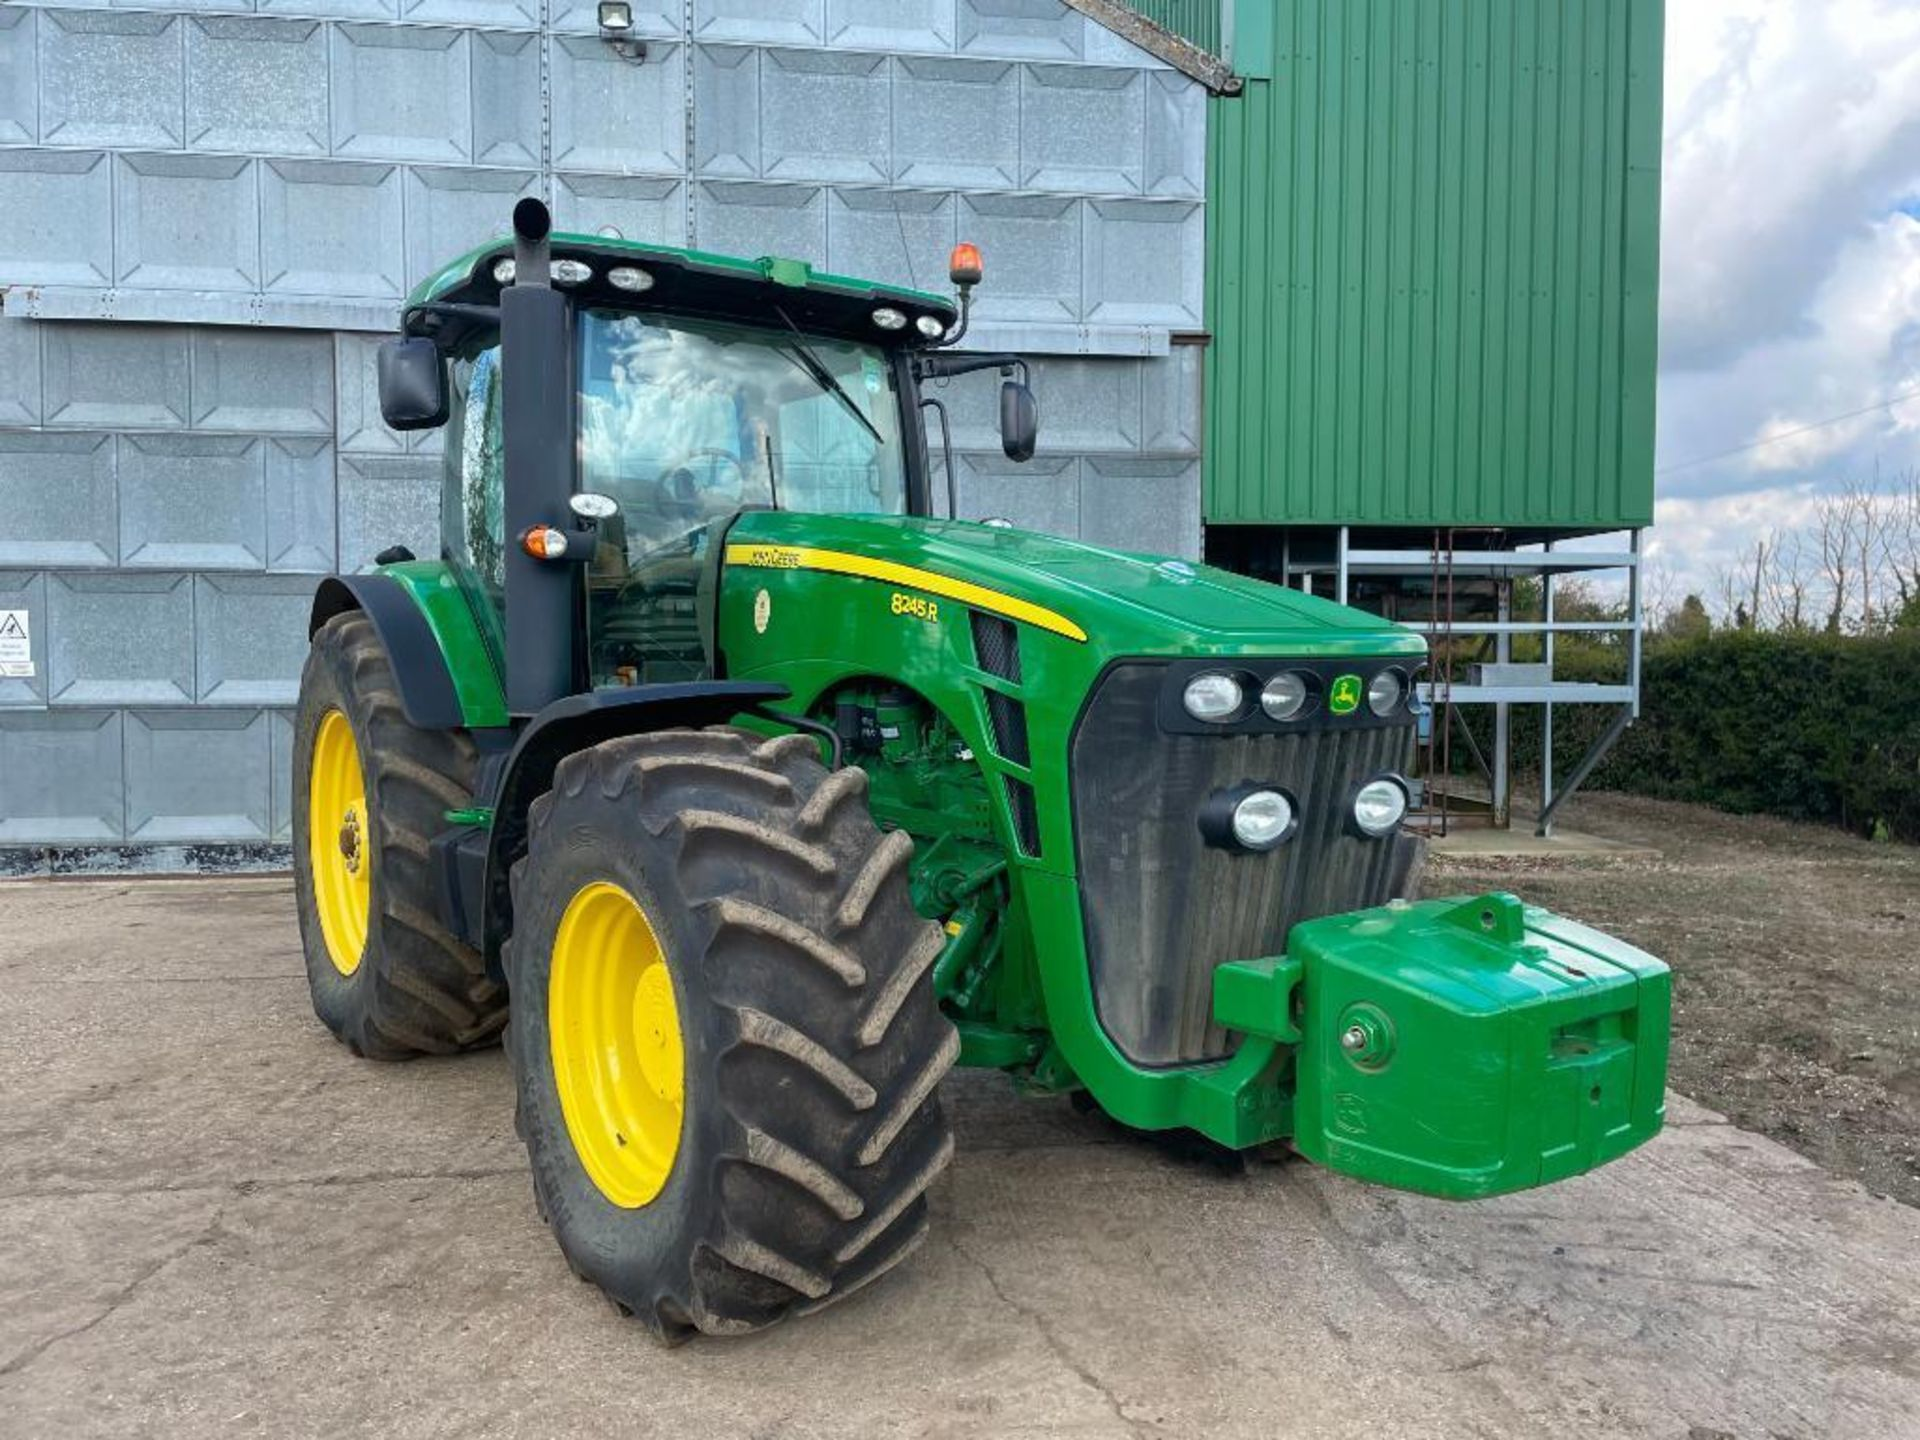 2011 John Deere 8245R 40kph Powershift with 4 electric spools, TLS front suspension and 900kg front - Image 11 of 18